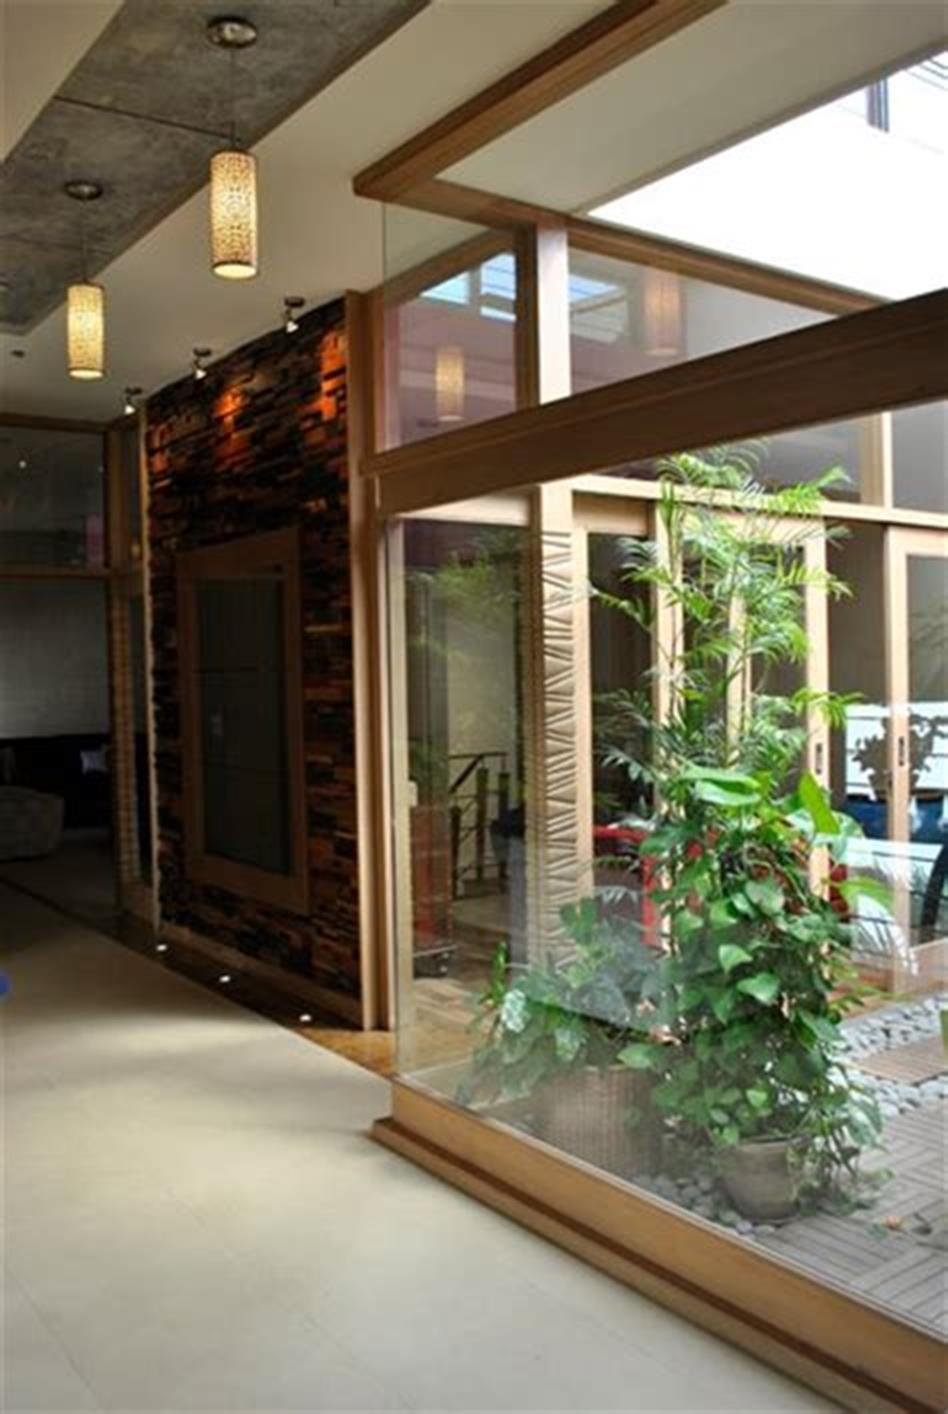 50 Most Popular Affordable Sunroom Design Ideas on a Budget 39